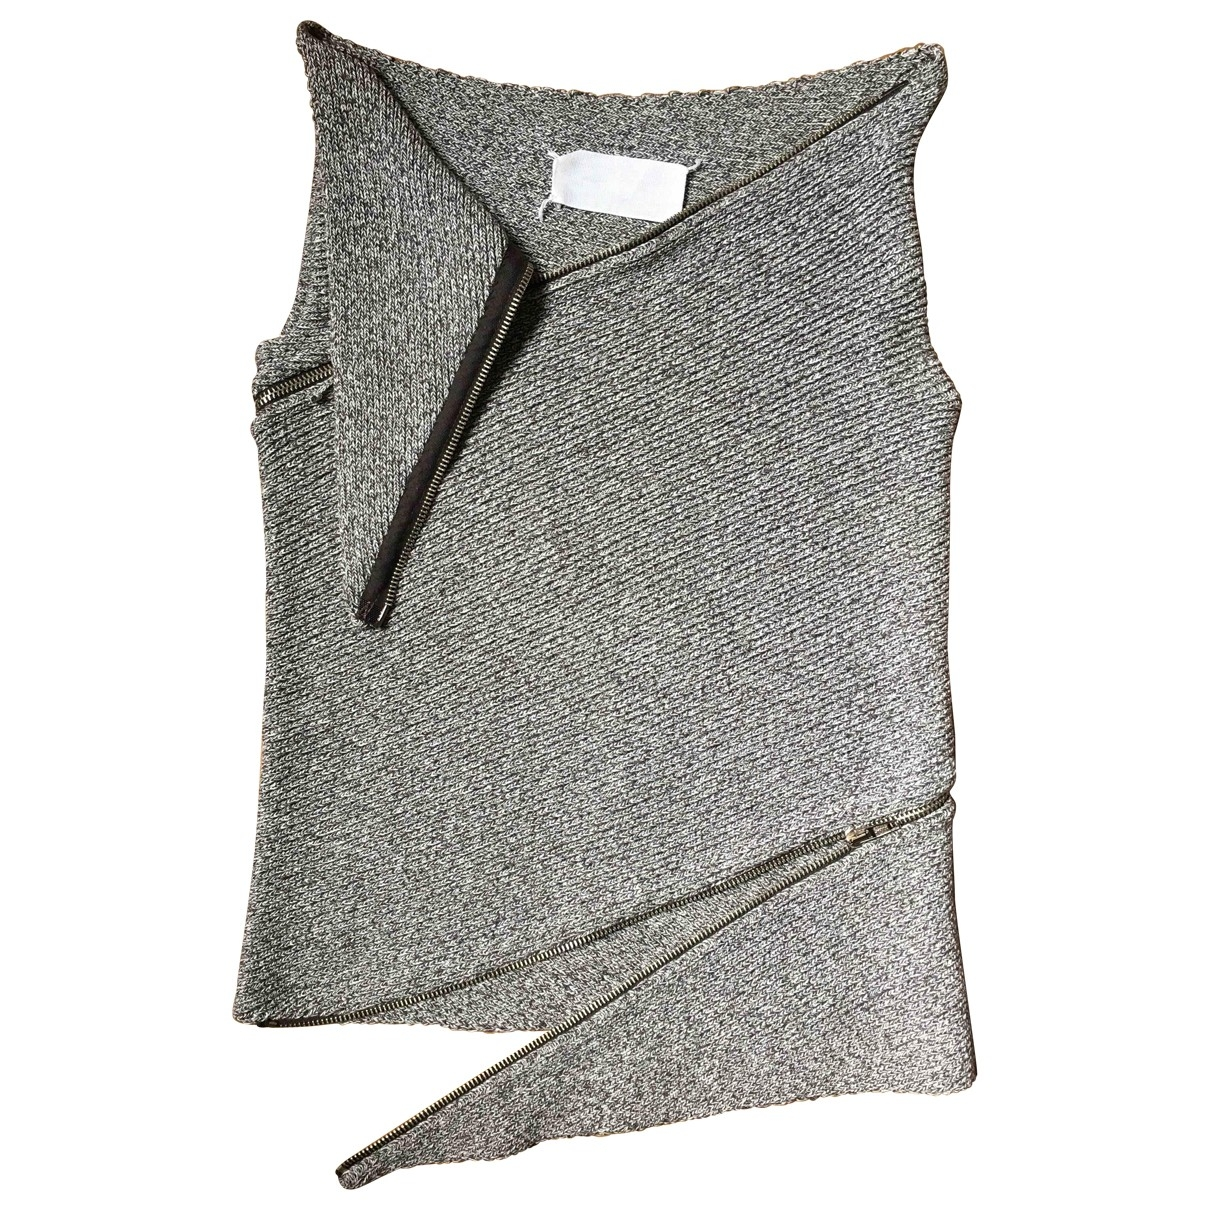 Maison Martin Margiela \N Grey Cotton Knitwear for Women S International